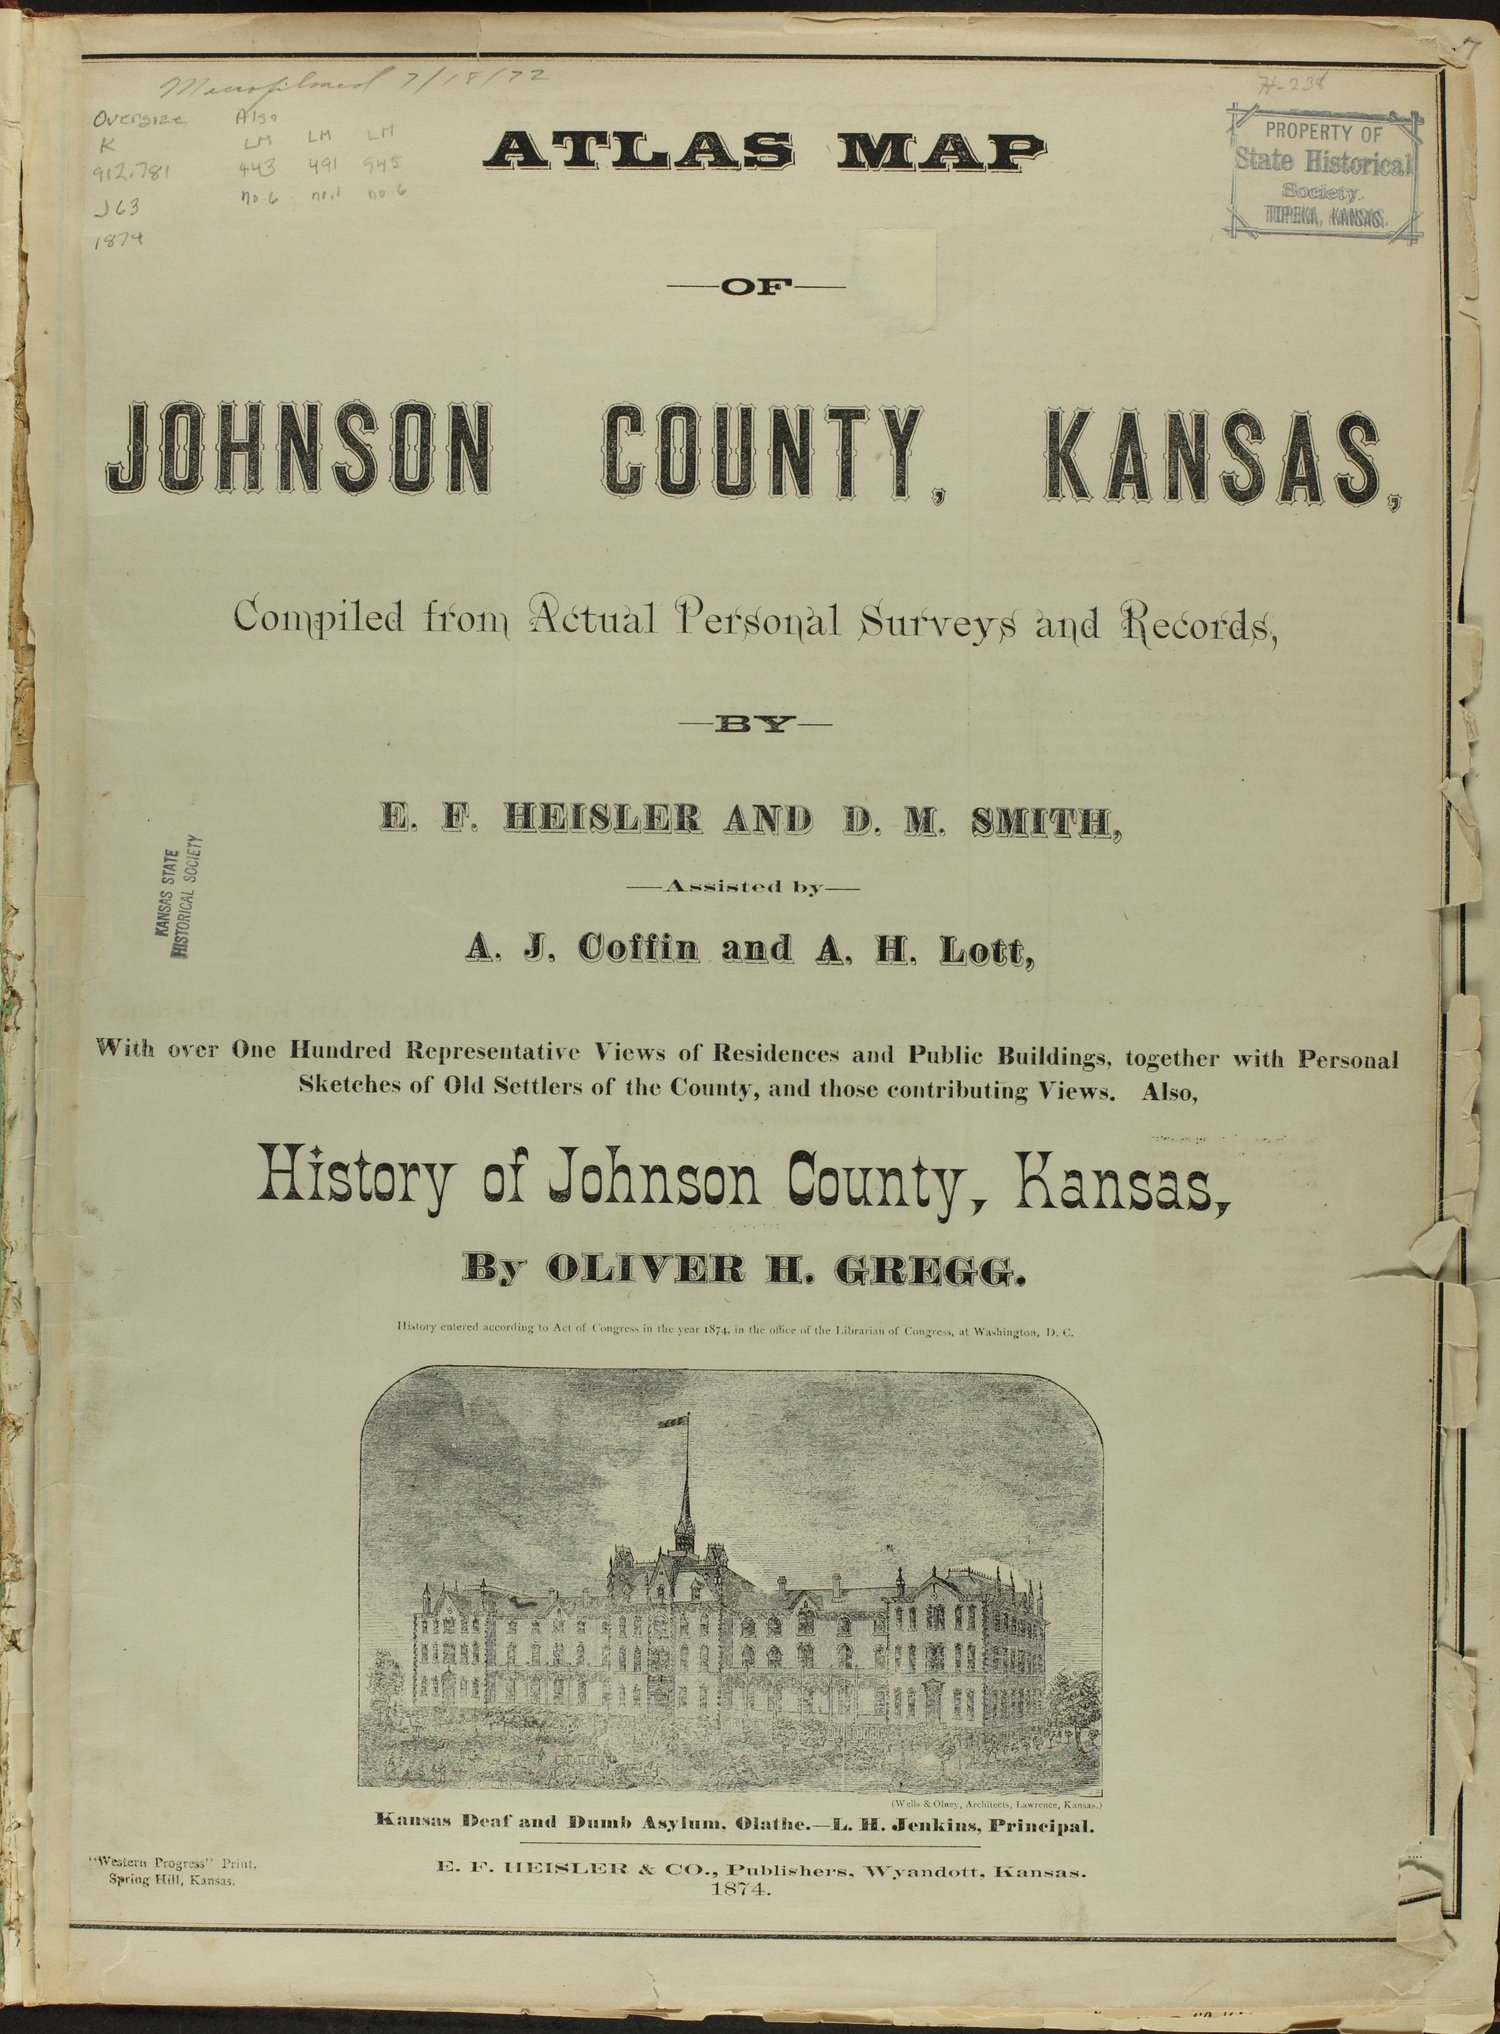 Atlas map of Johnson County, Kansas - Title Page